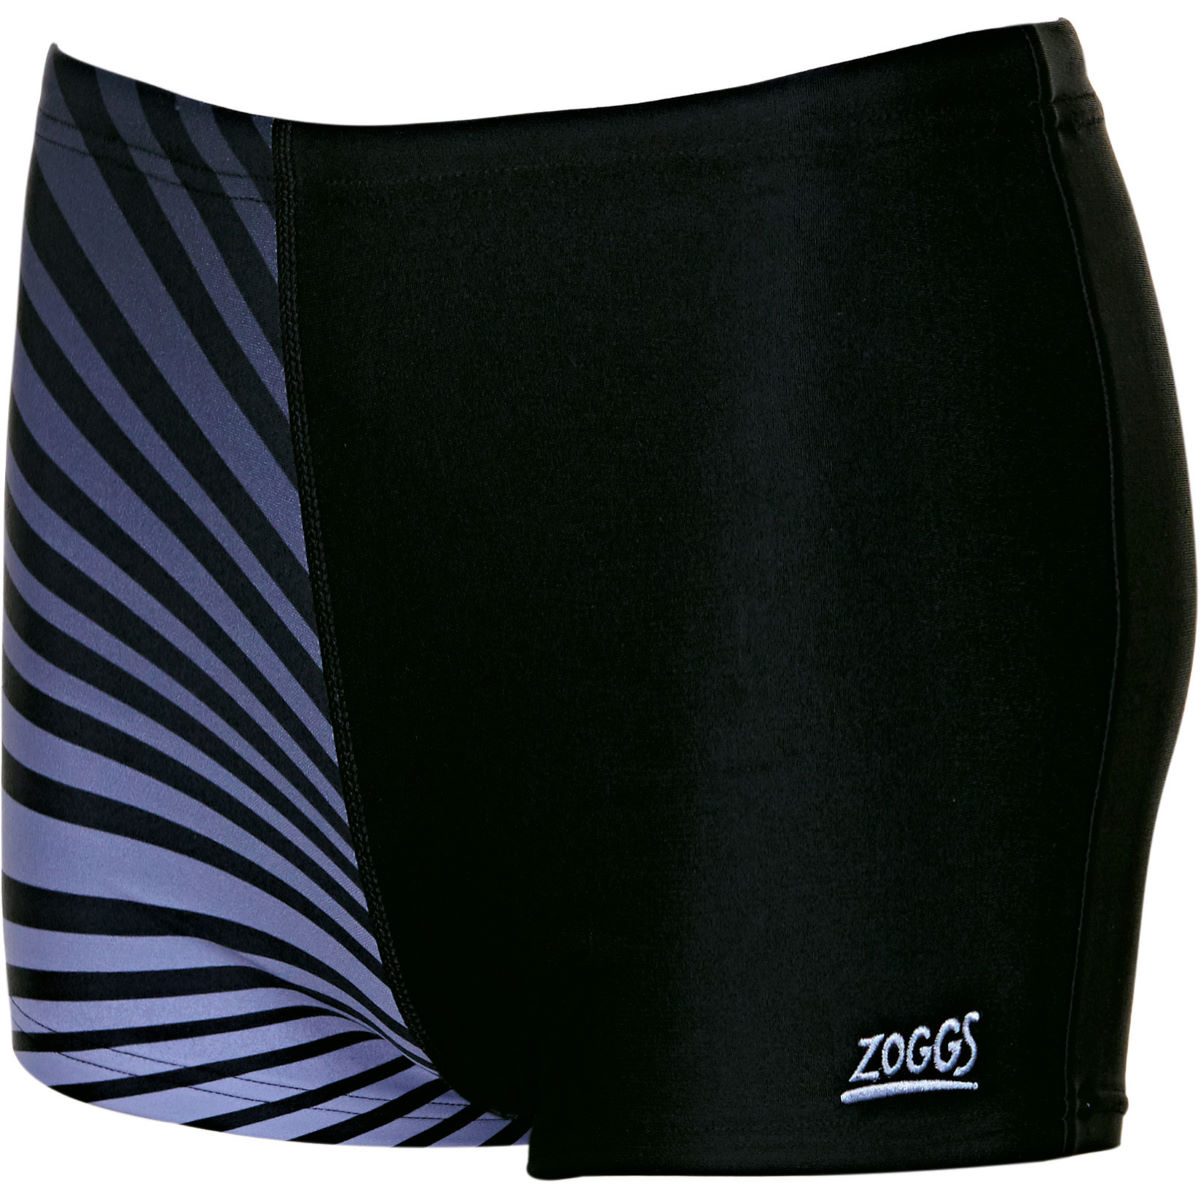 Image of Zoggs Boy's Diego Hip Racer Swimming Shorts